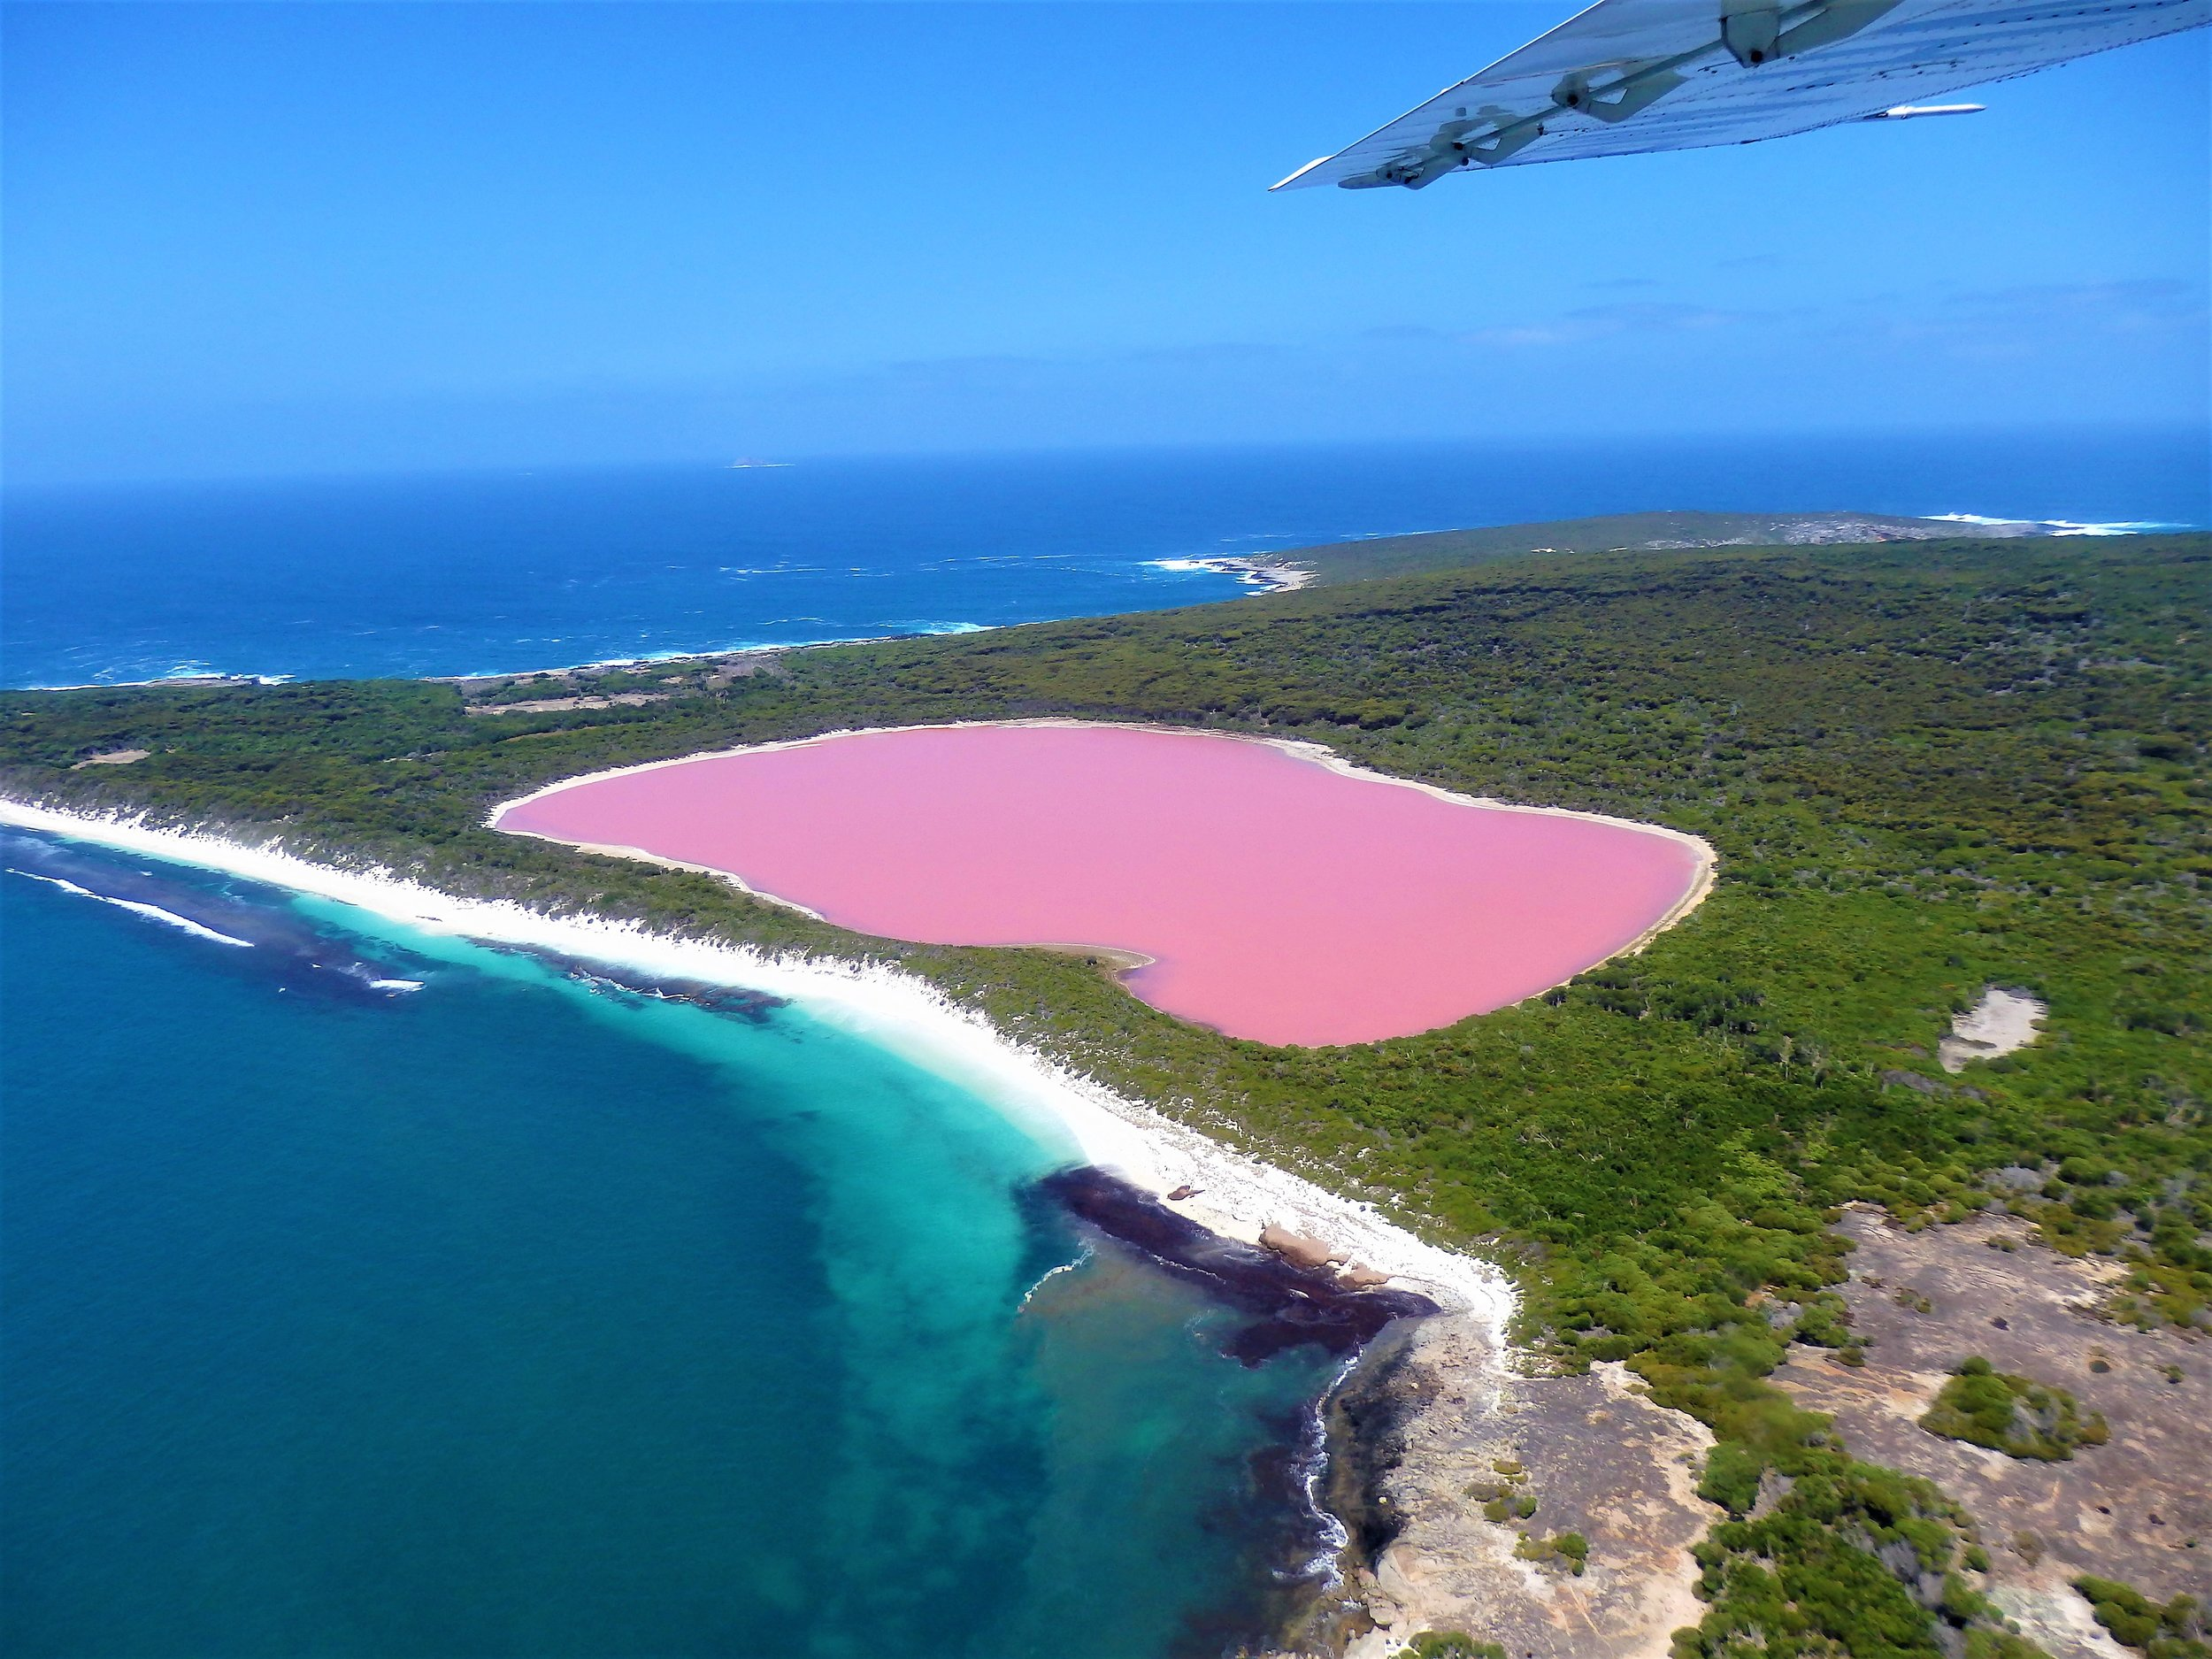 Lake Hillier-Middle Island Flight - See the magnificently pink Lake Hillier, on Middle Island, flying via Cape Le Grand National Park including the turquoise water and bright white sands of Lucky Bay and the Recherche ArchipelagoCLICK HERE for more info.